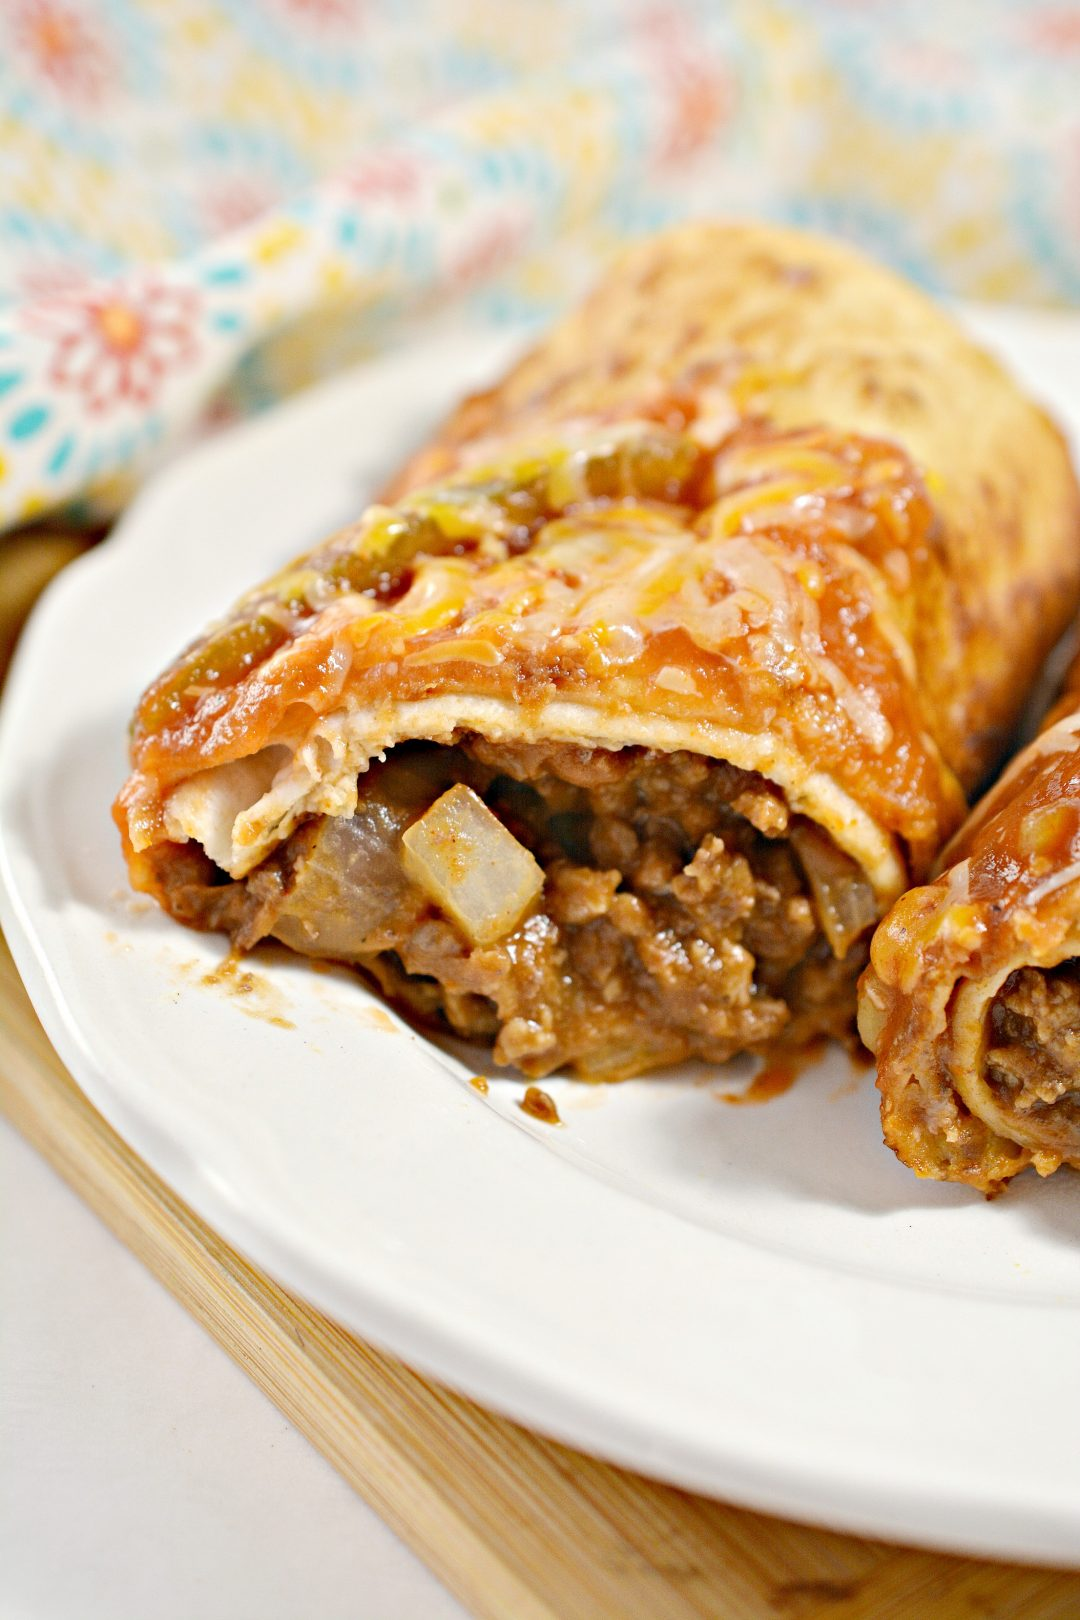 Beef and Cheese Chimichangas